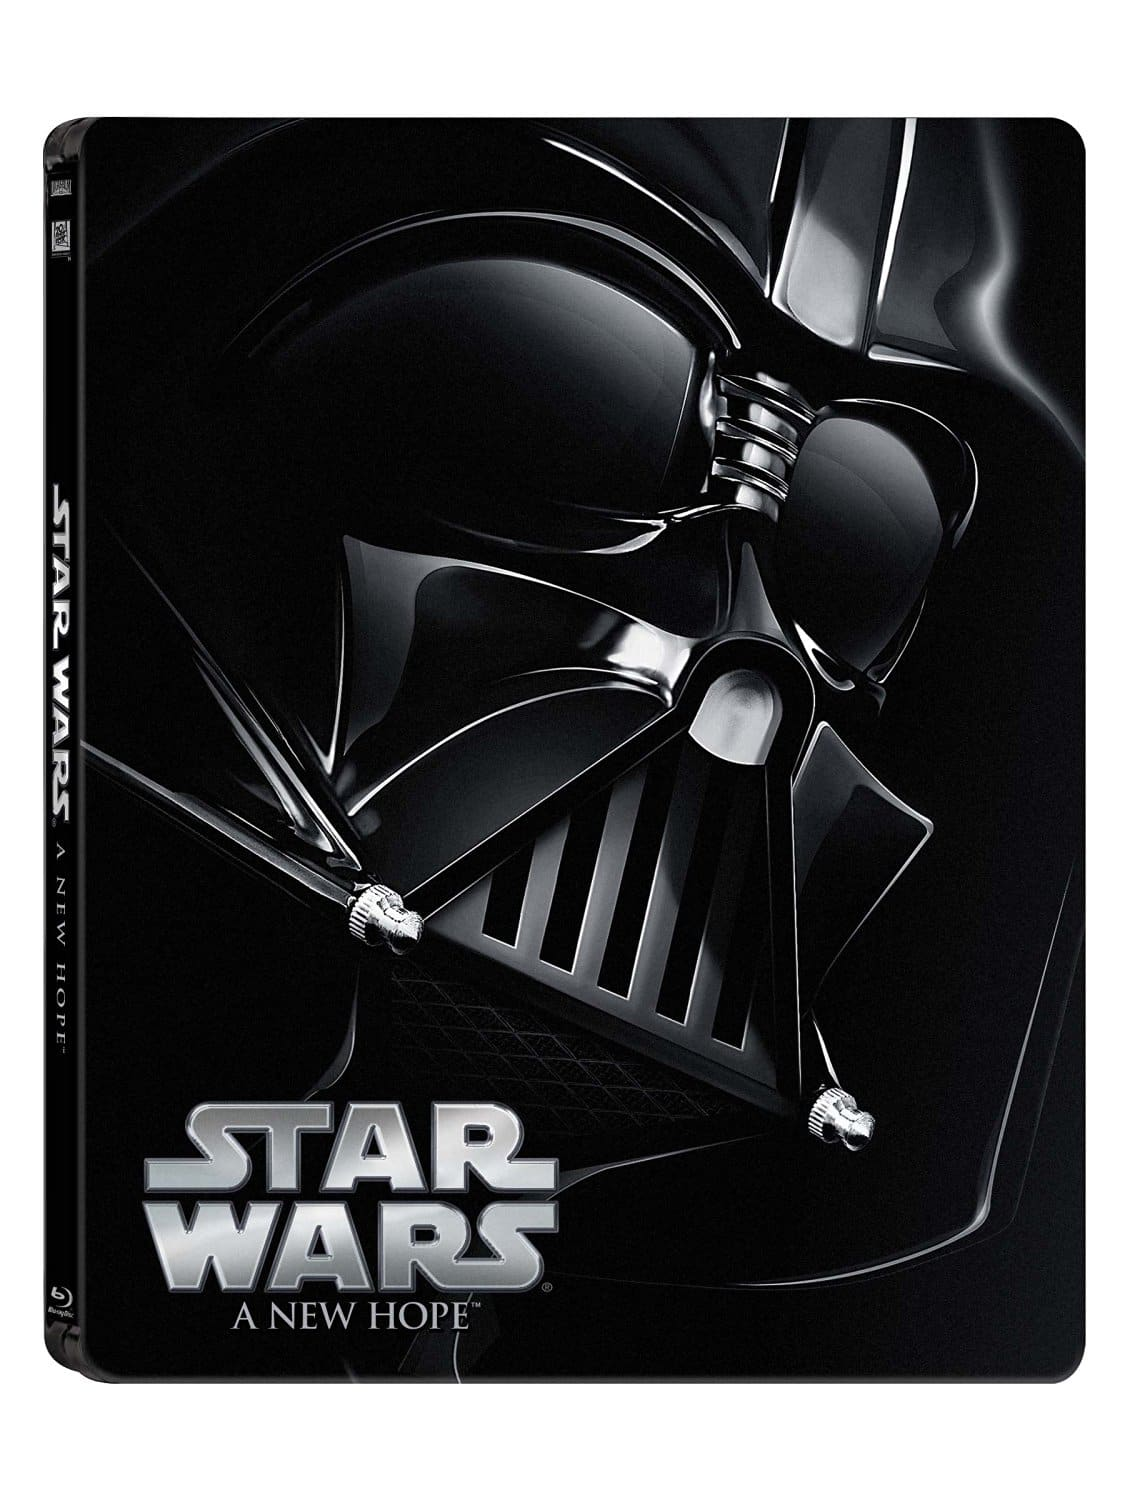 Star Wars Blu-Ray Steelbooks: Episode I-IV  $10 each + Free Store Pick-Up